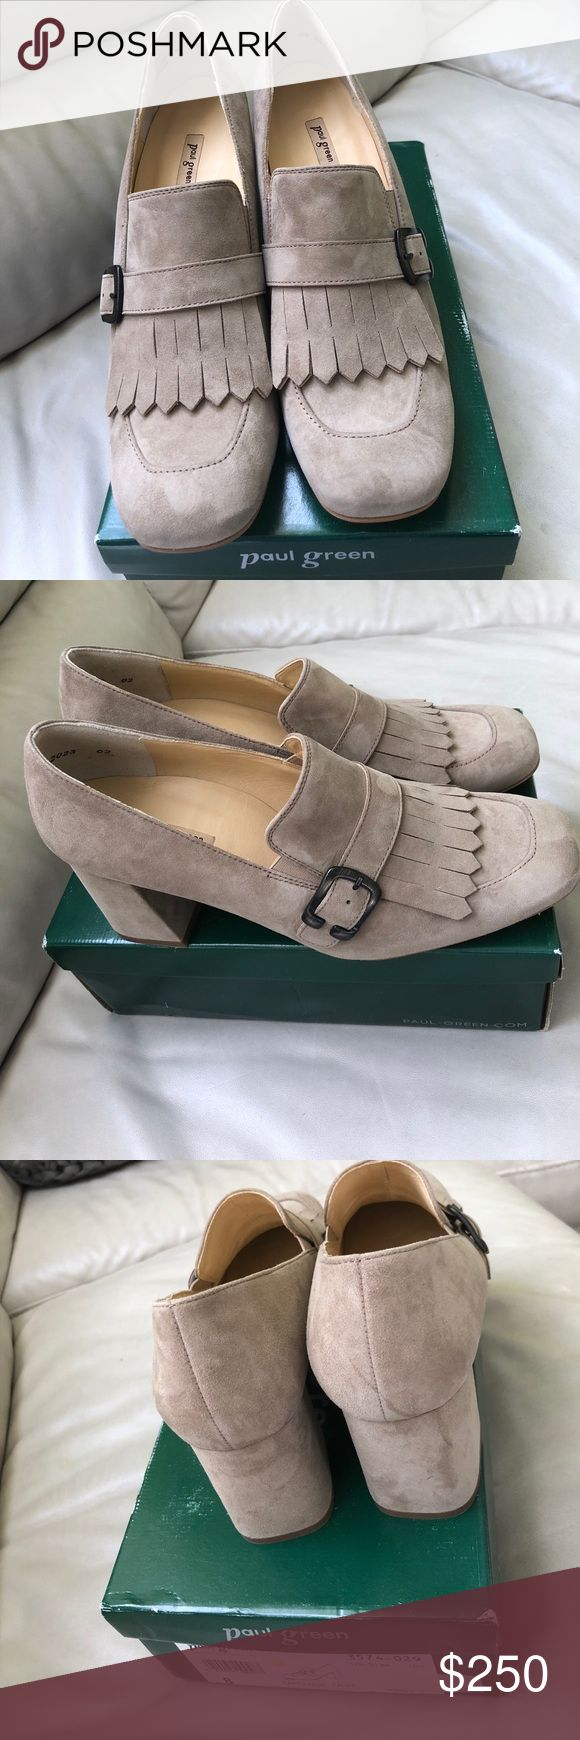 Paul Green shoes Size 11 NIB Paul Green shoes color taupe Paul Green Shoes Flats & Loafers